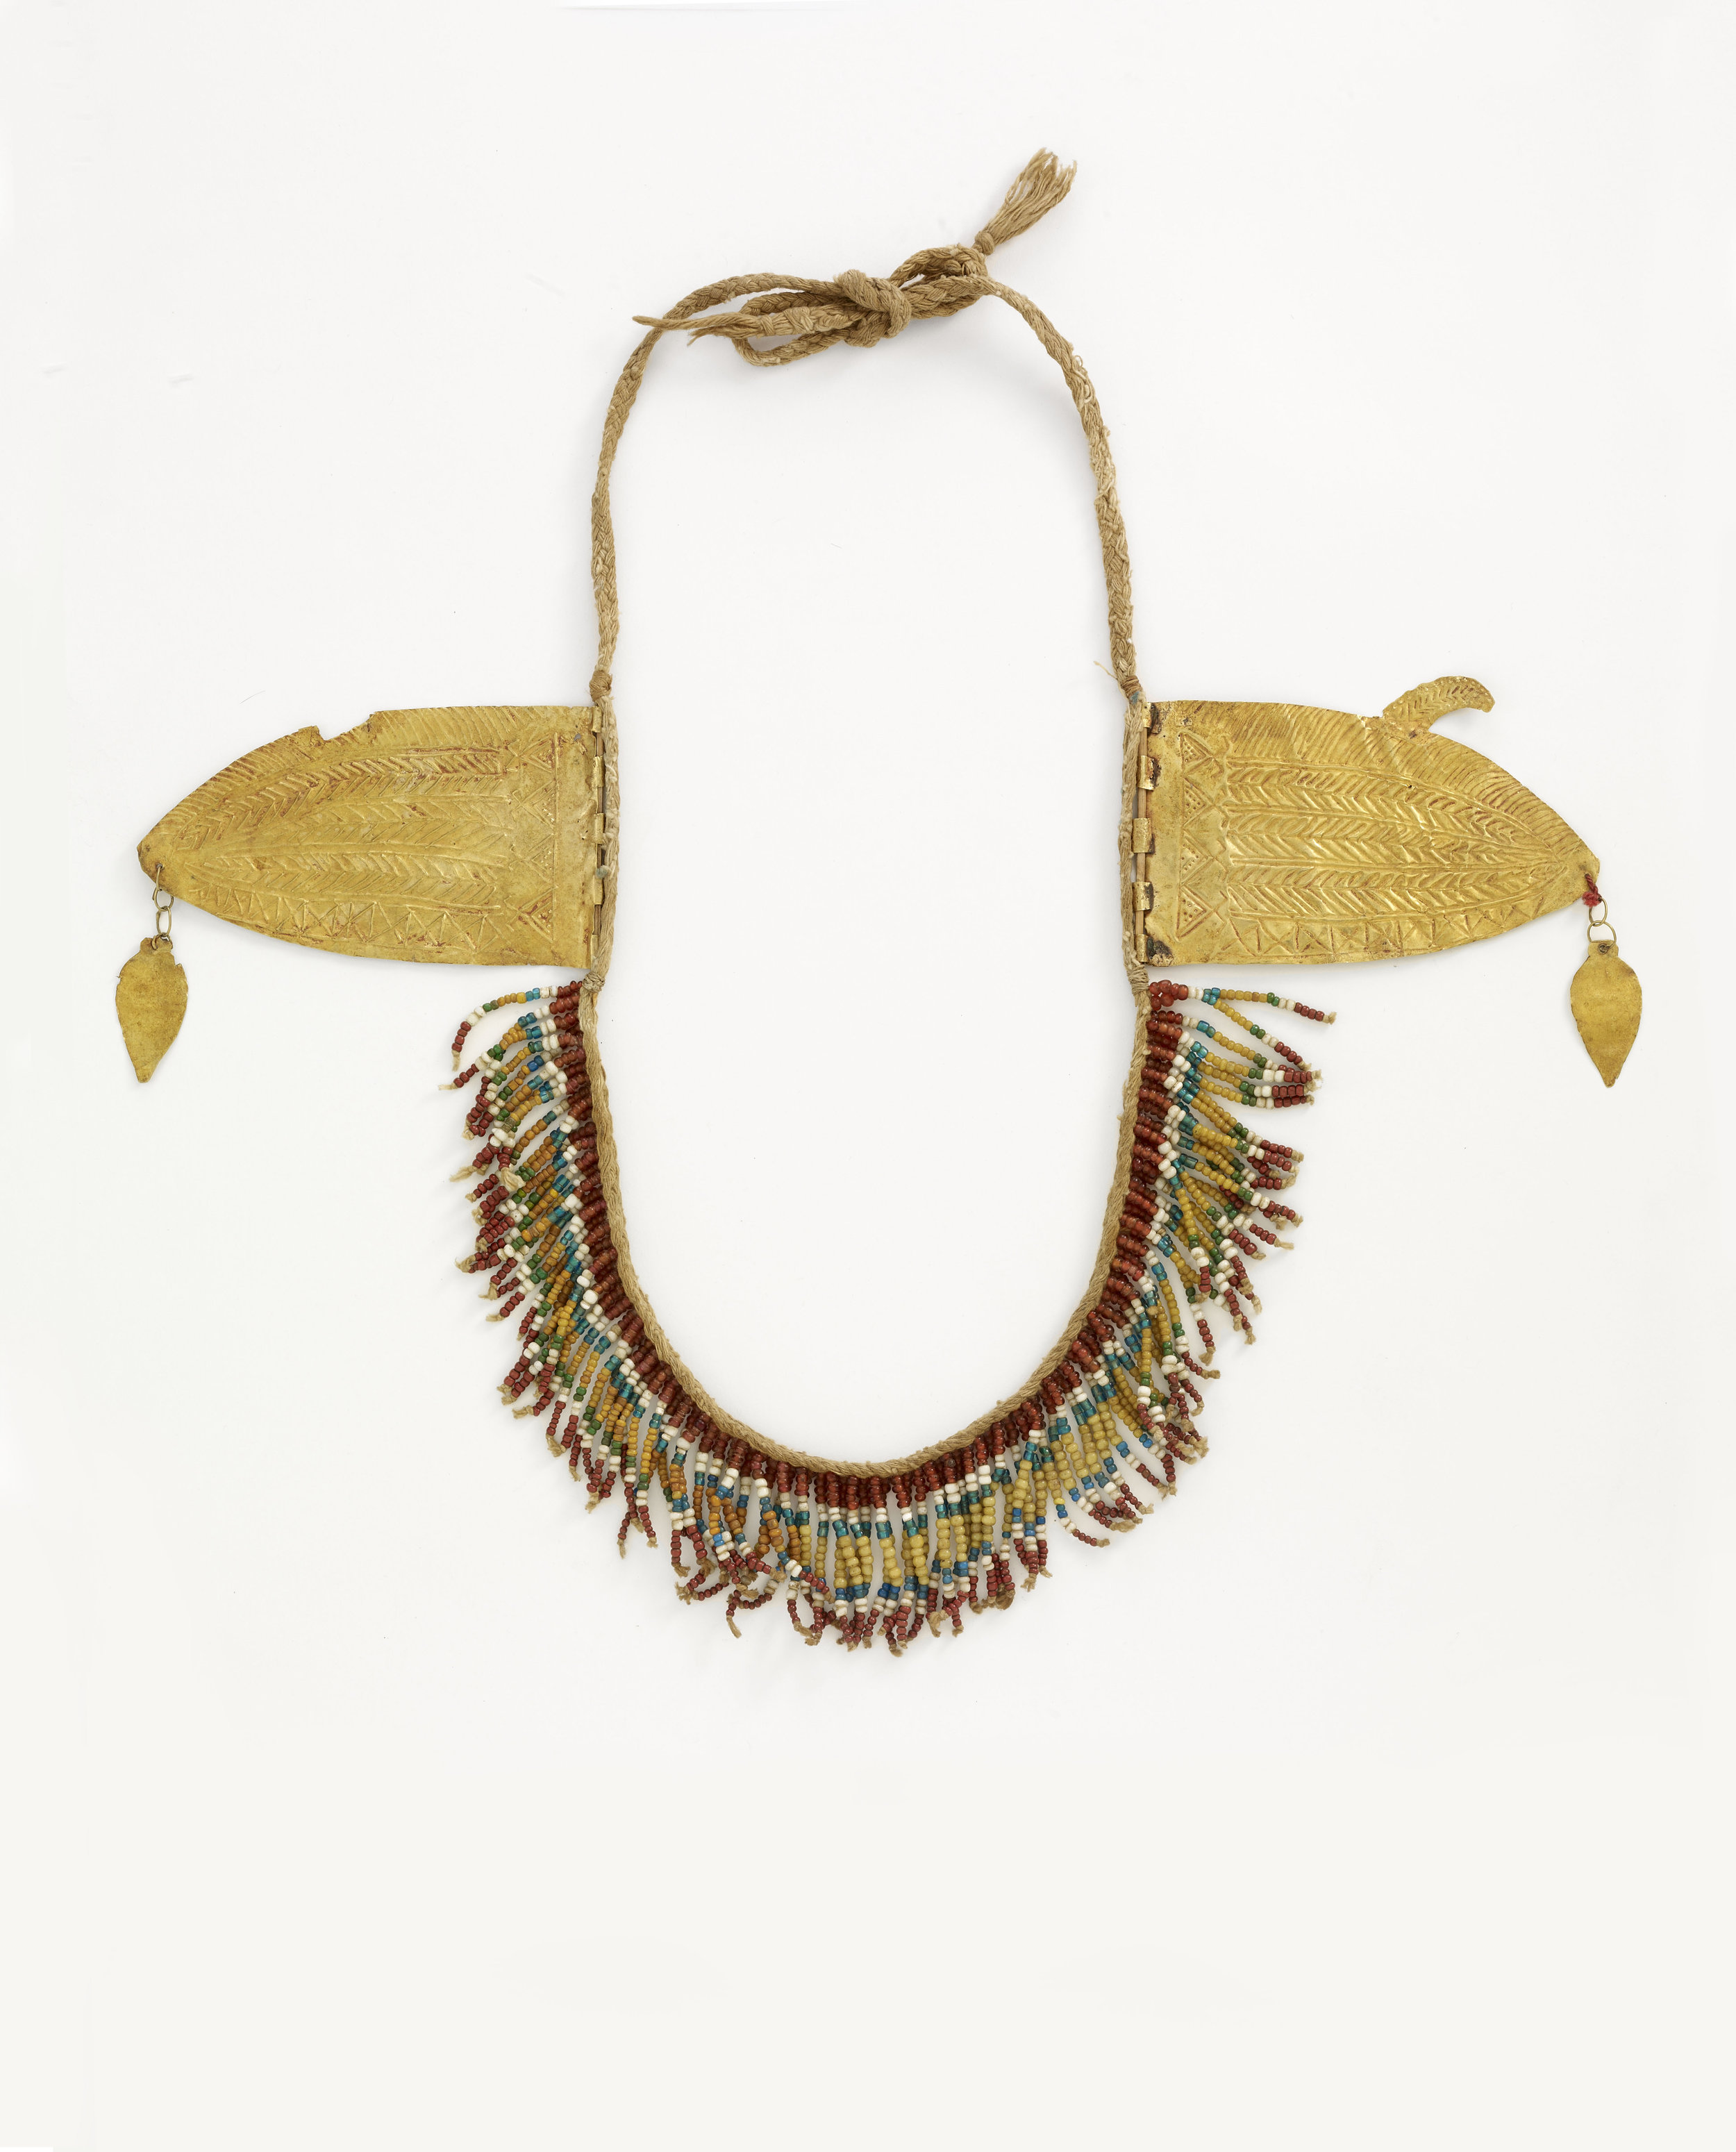 Chin Ornament of Gold and Trade Beads © Musée du Quai-Branly | France